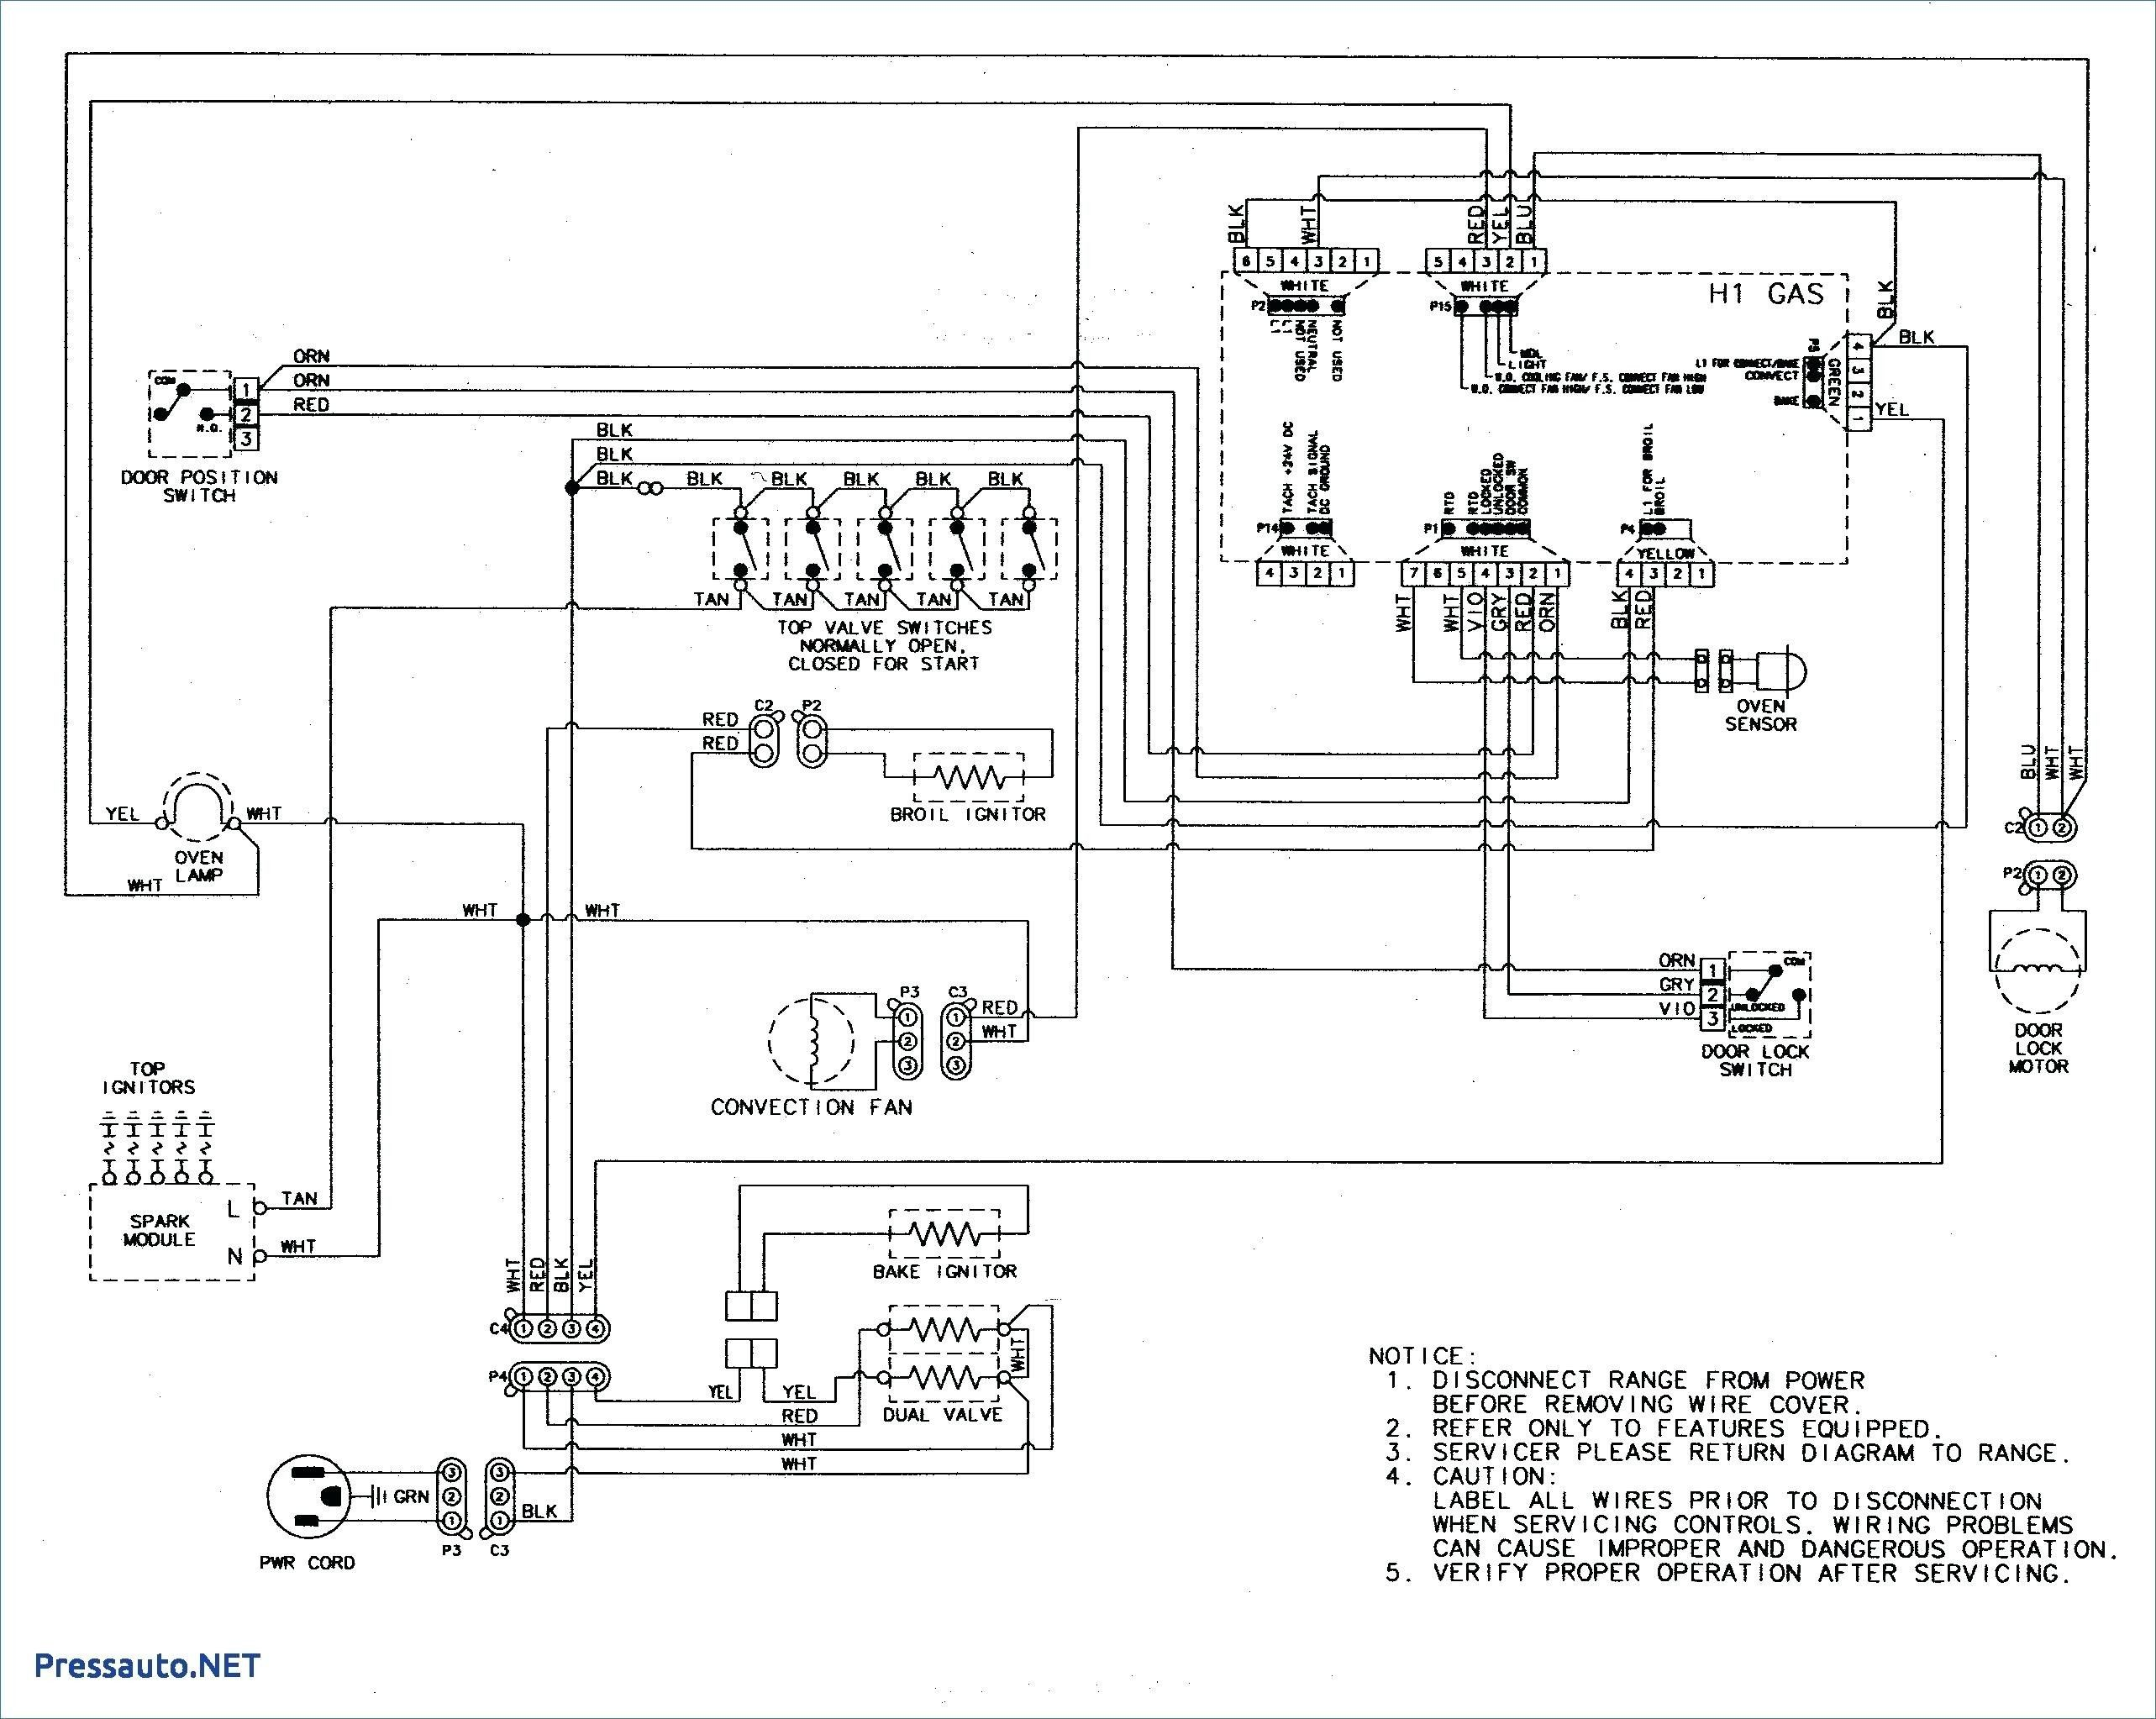 Diagram Of Auto Ac System in 2021 | Whirlpool dryer, Electrical diagram,  Diagram | Affinity 8 Furnace Wiring Diagram S |  | Pinterest